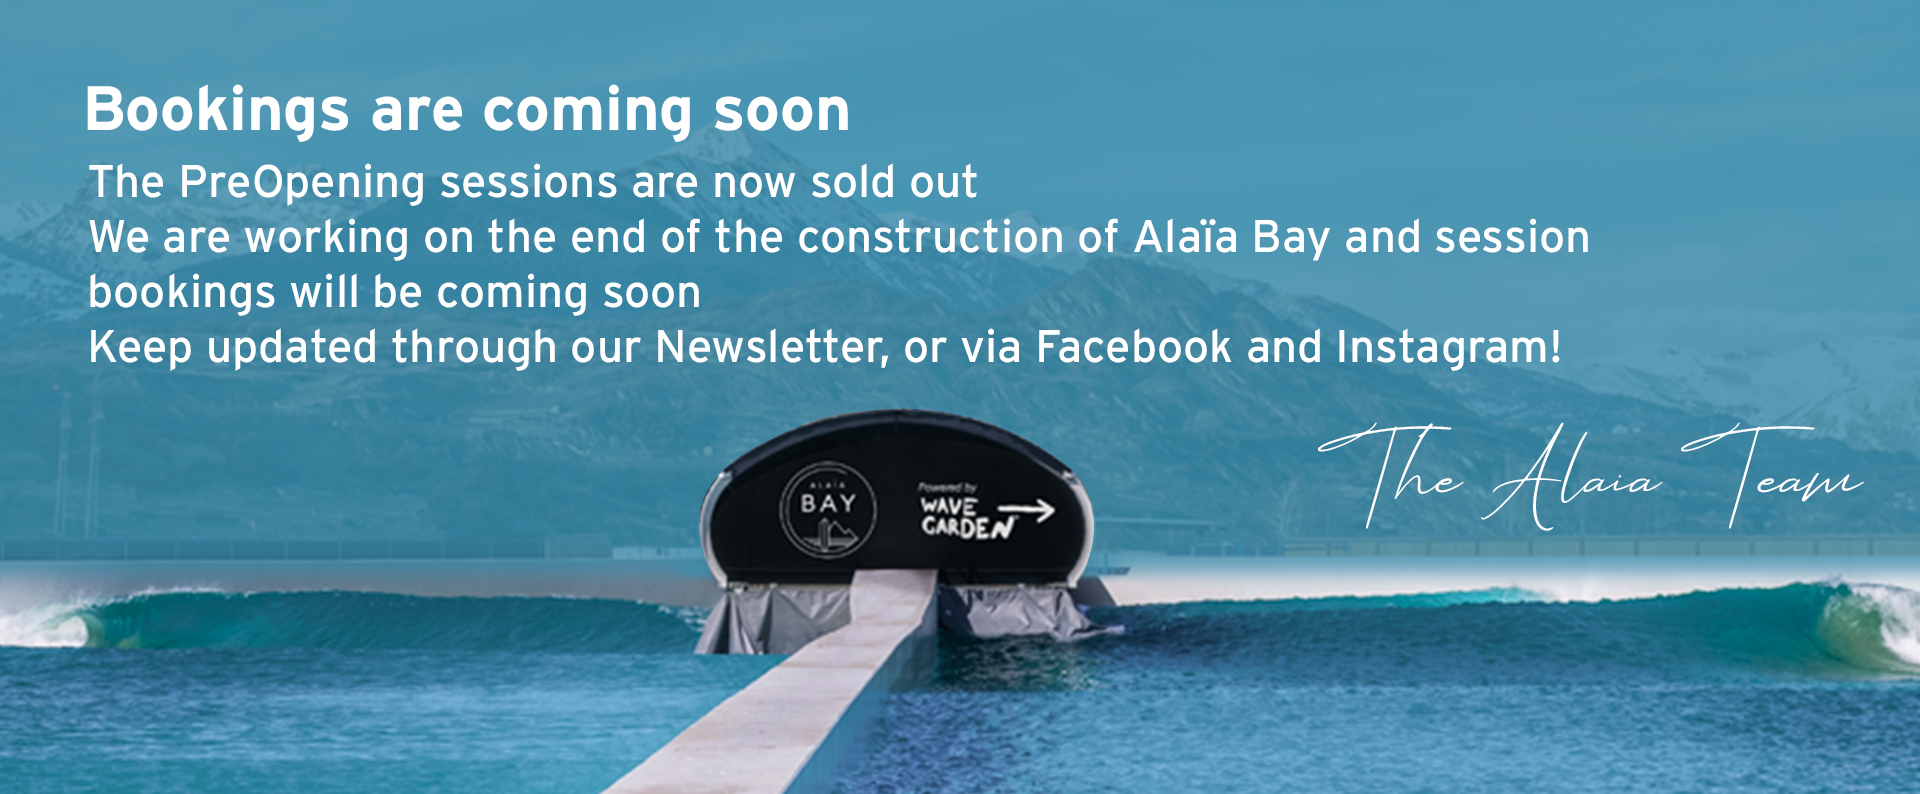 Bookings are coming soon Alaïa Bay